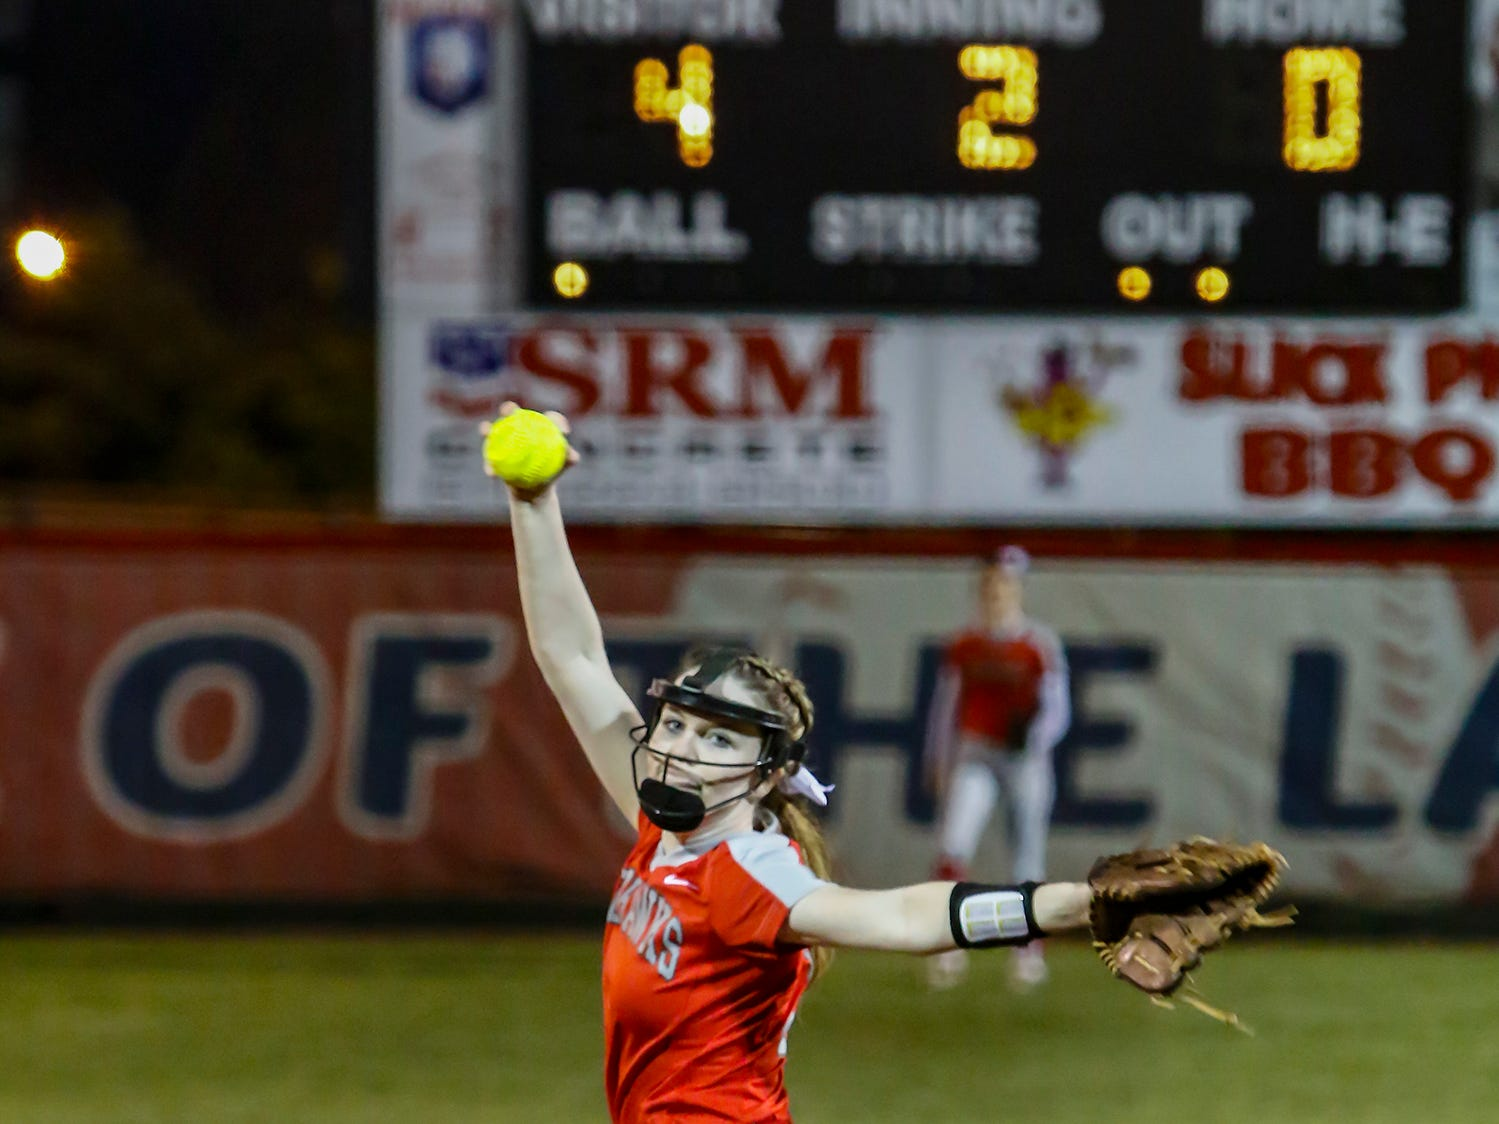 Stewarts Creek's Amber Lawson fires a pitch during Monday's game at Oakland.